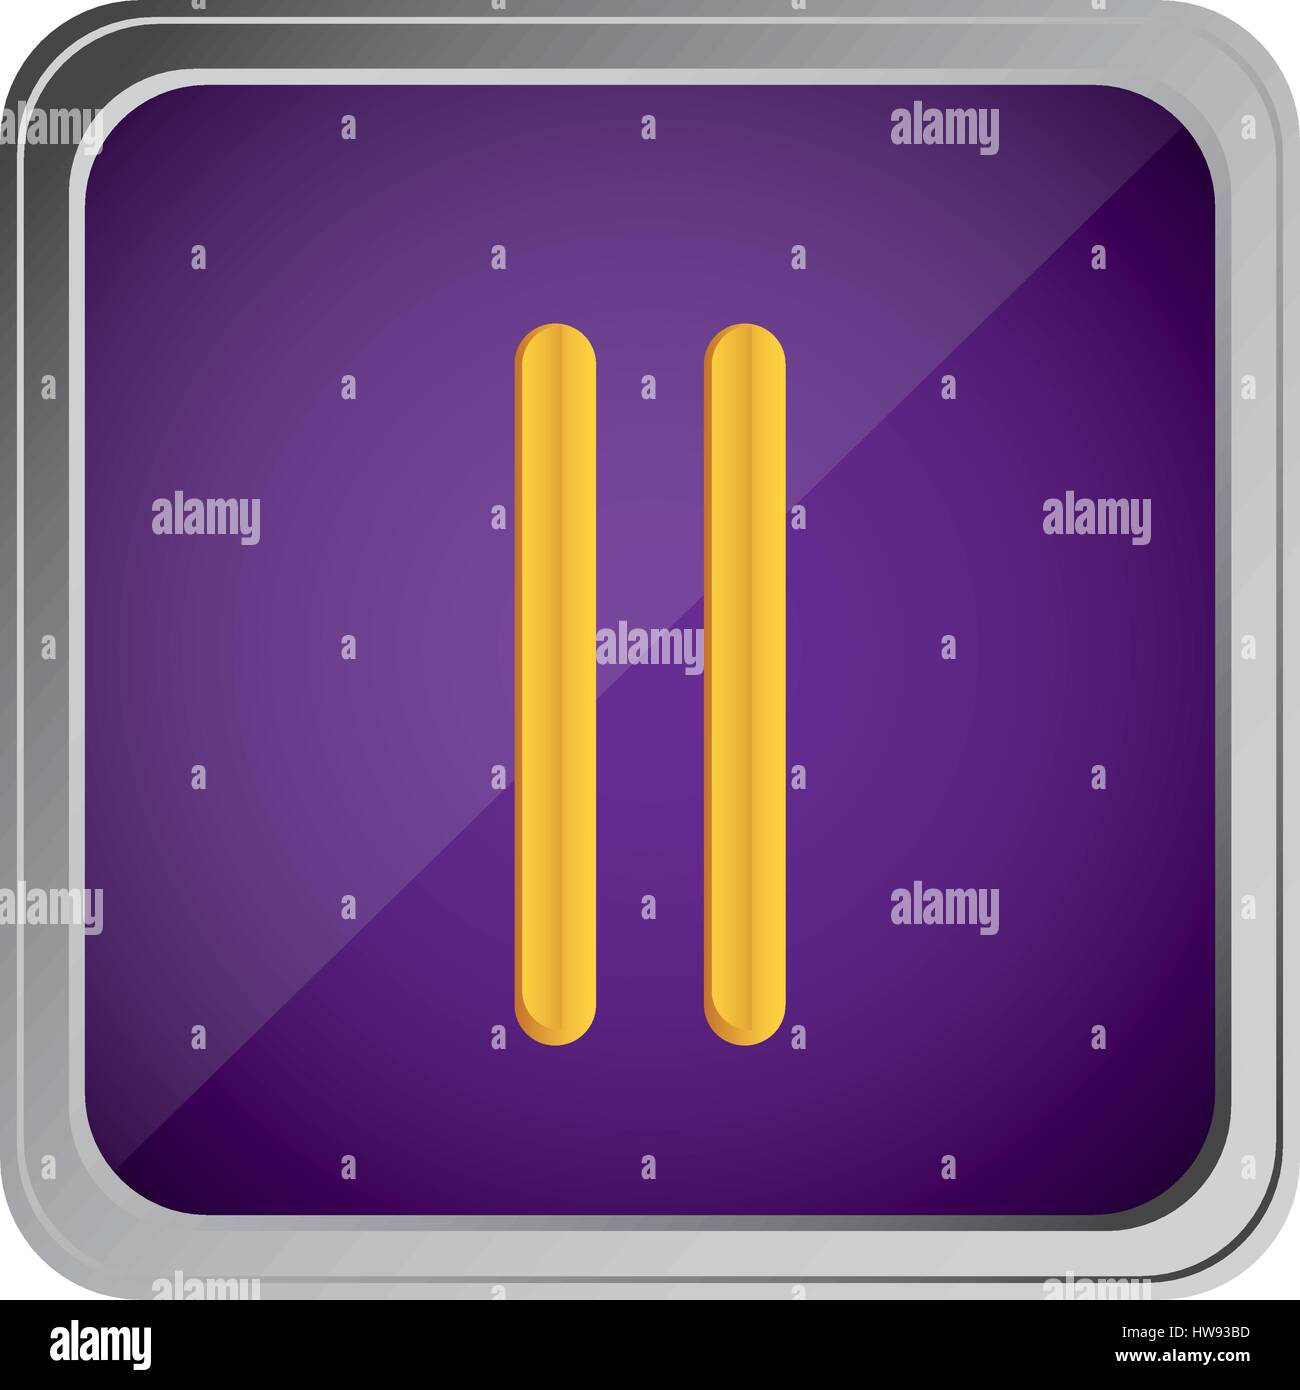 pause button icon with background purple - Stock Image